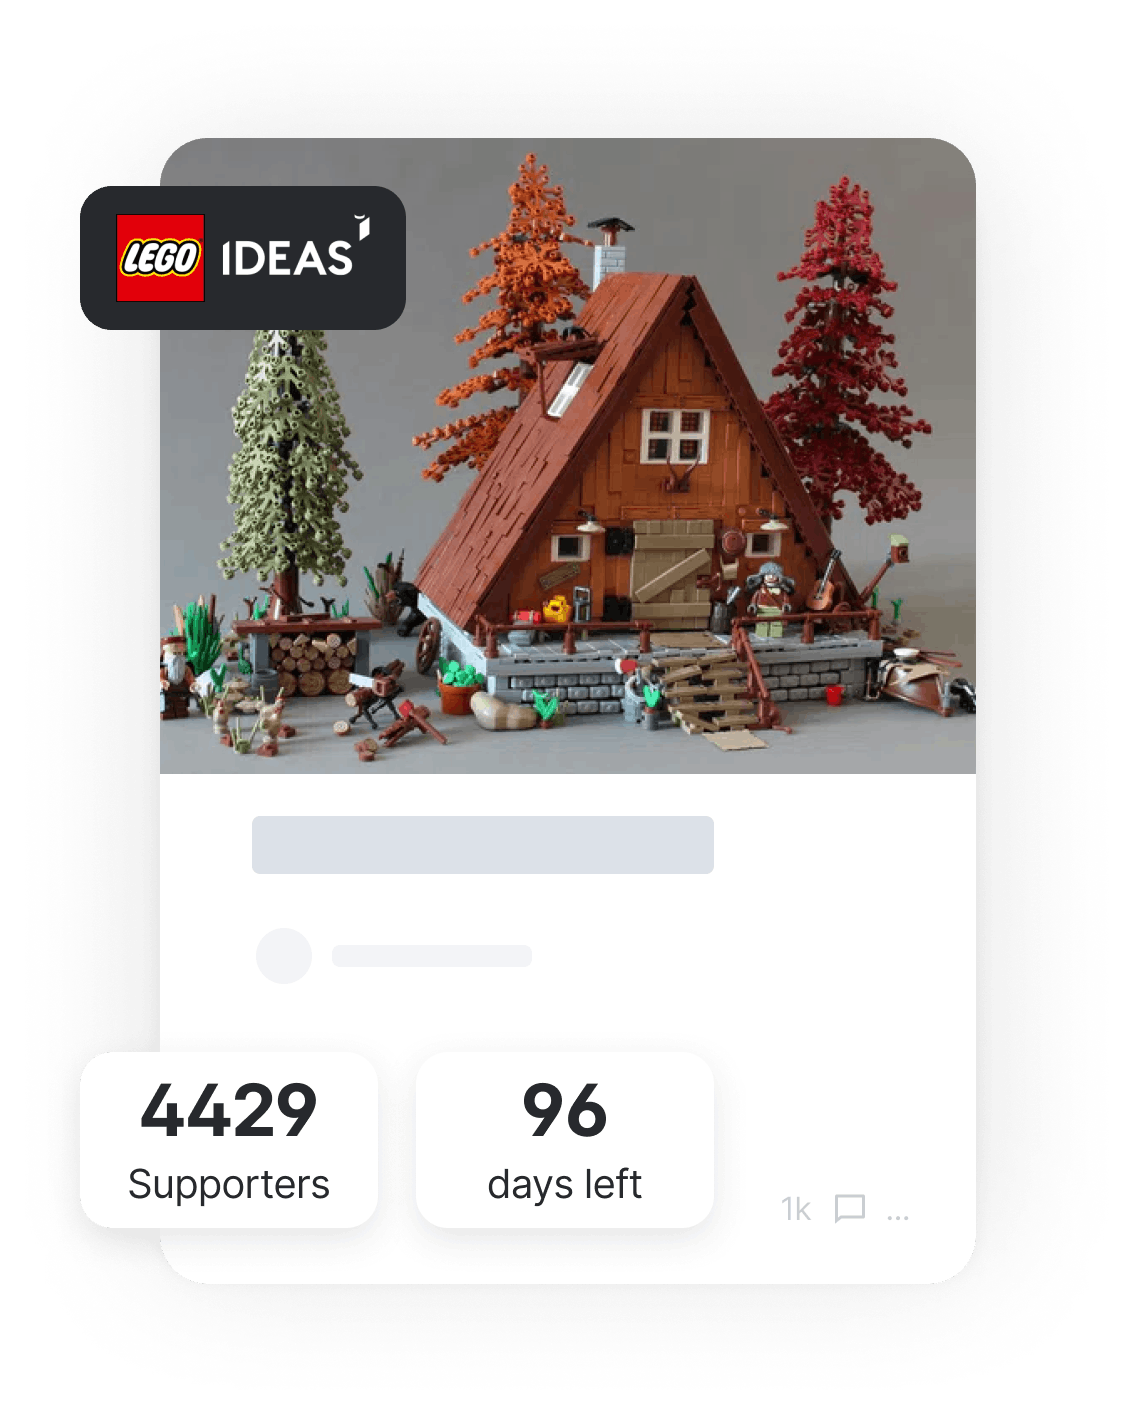 Tile for Lego with supporter count and deadline